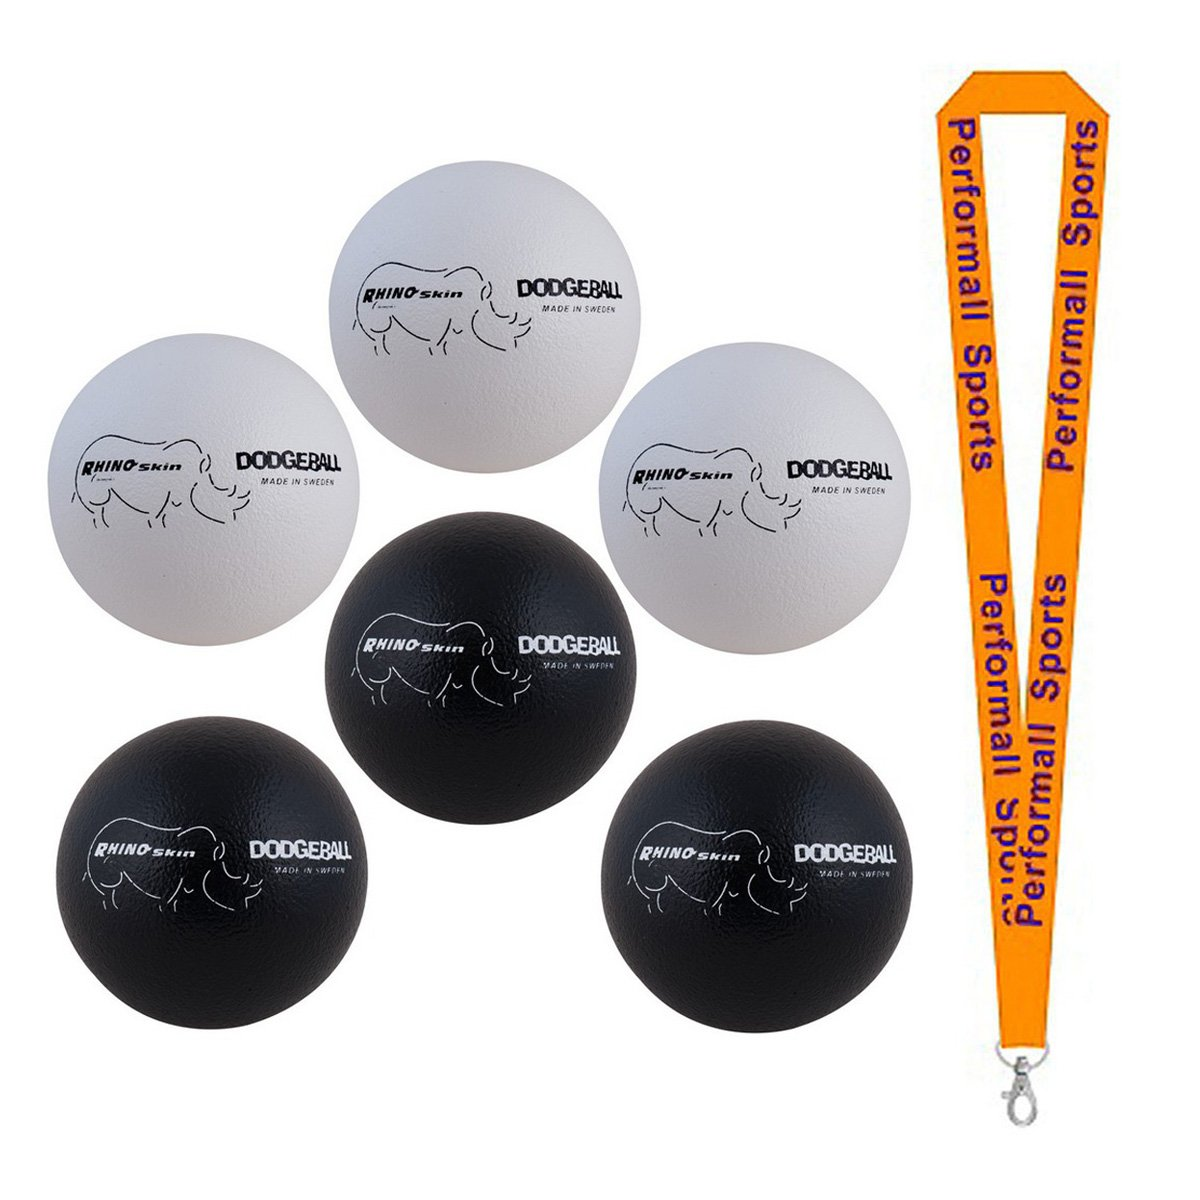 Champion Sports Rhino Skin Dodgeball Set Black / White (Set of 6) with 1 Performall Lanyard RXD8BWSET-1P by Performall Sports Dodgeballs